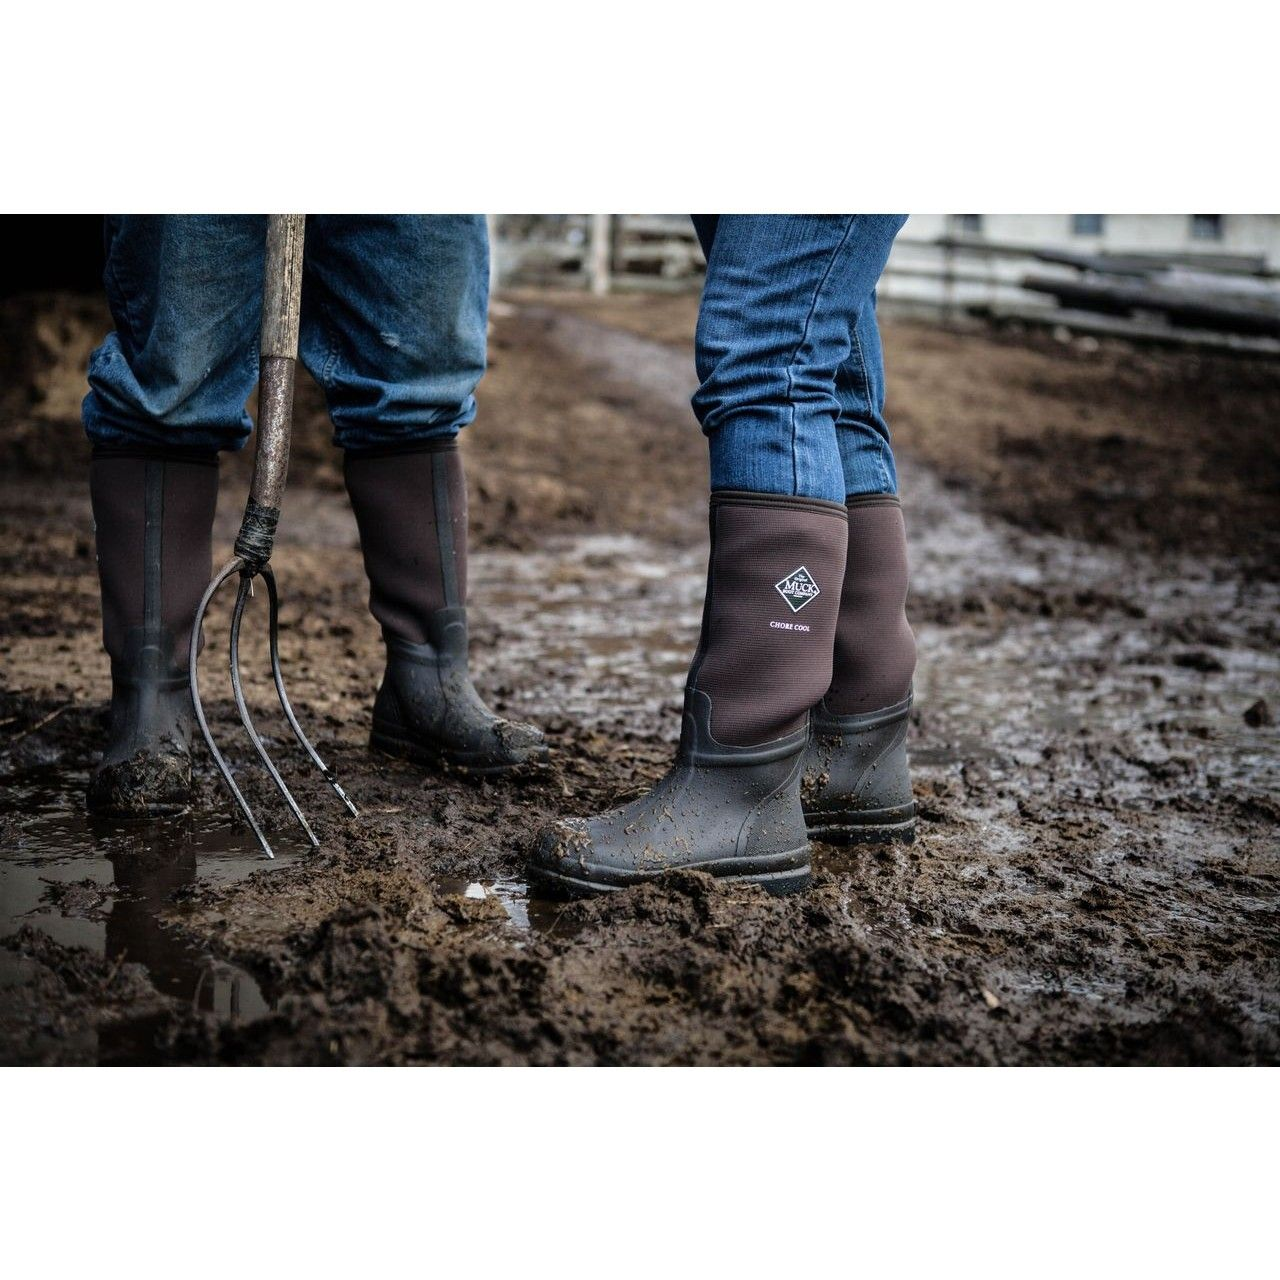 cc49c921966 chore cool high muck boots - Google Search | Footwear | Muck boots ...